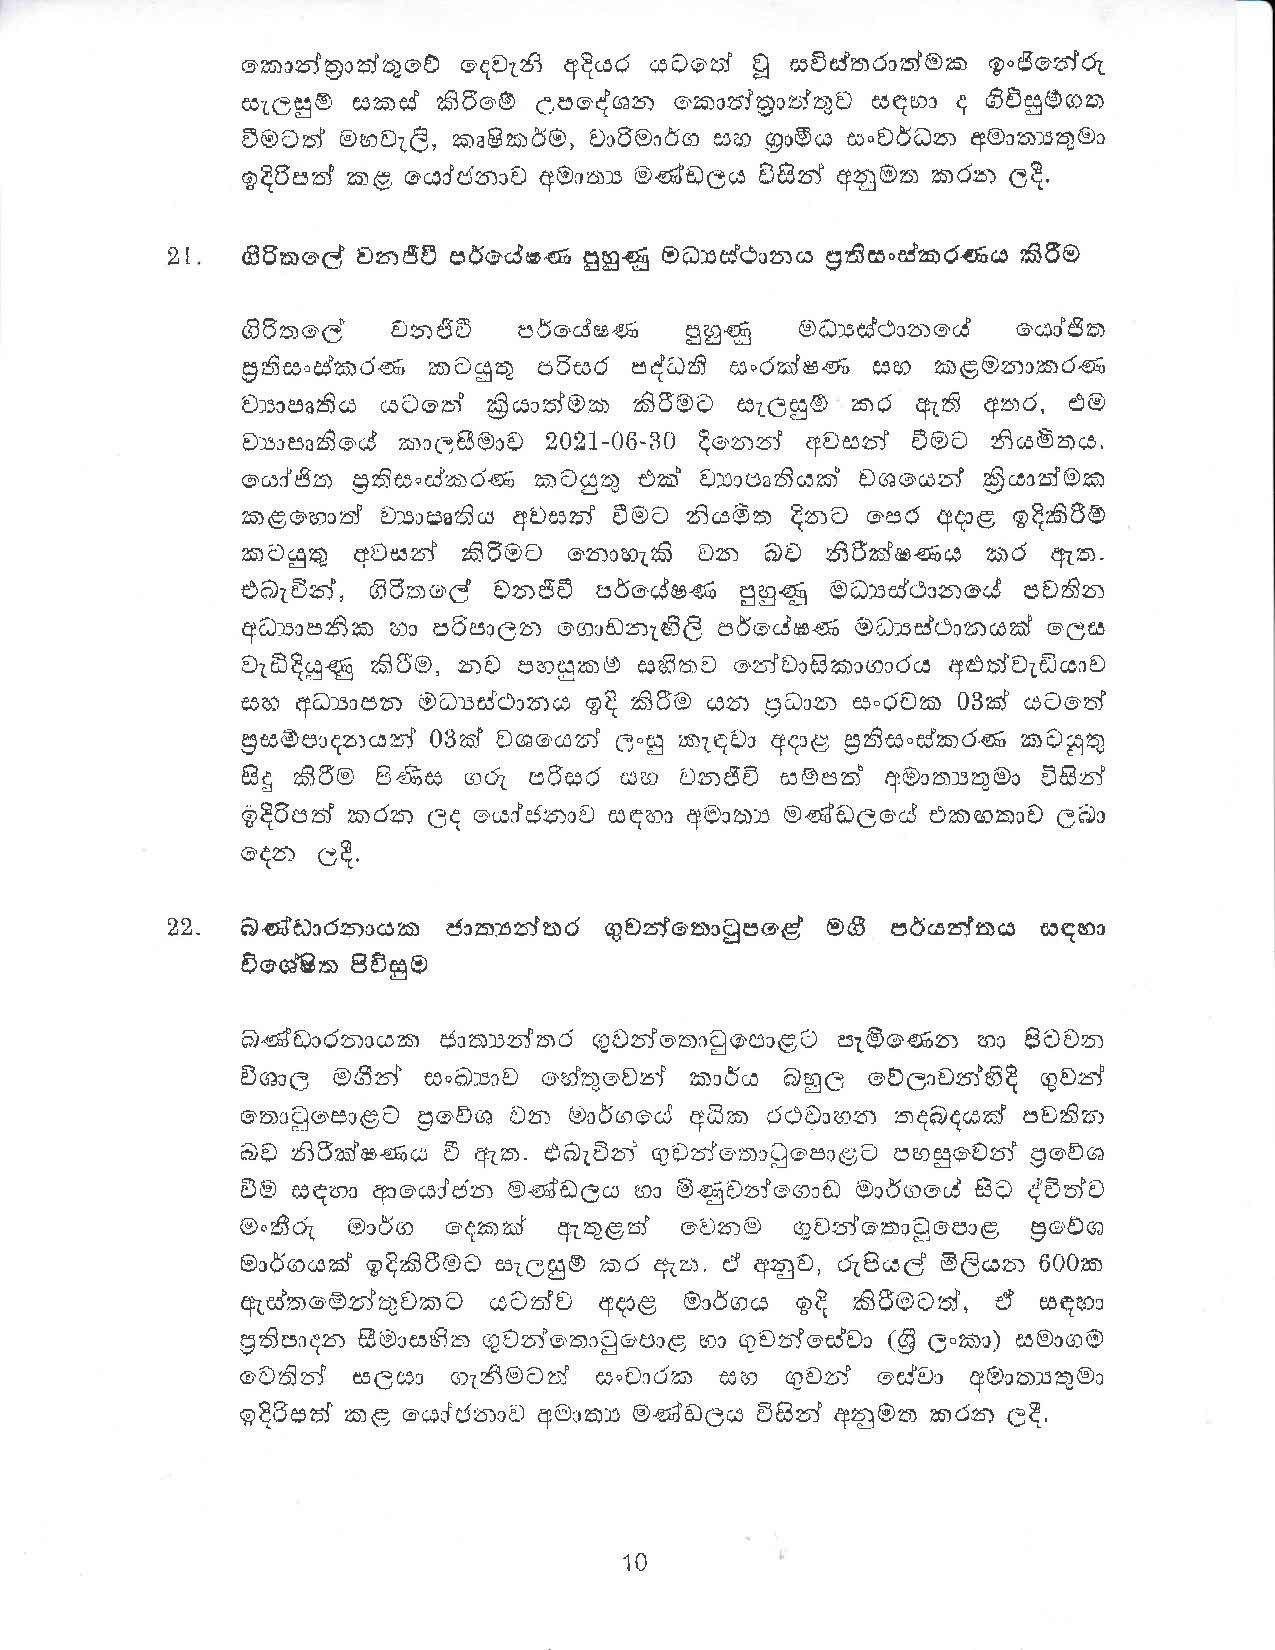 Cabinet Decision on 05.02.2020 page 010